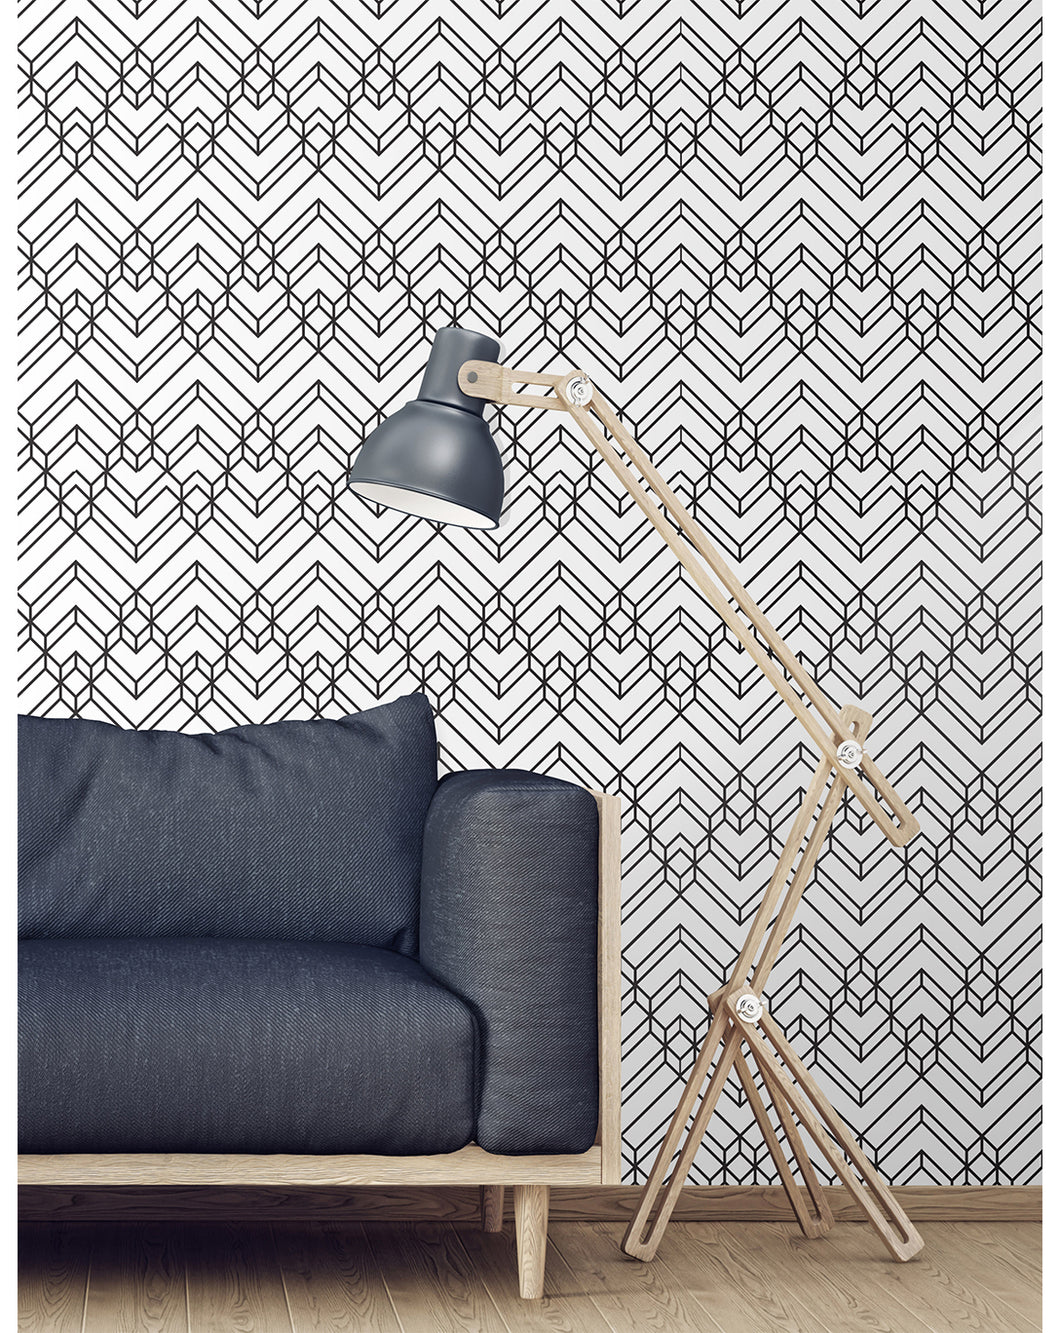 Abstract Black And White Chevron Geometric Removable Wallpaper Costacover